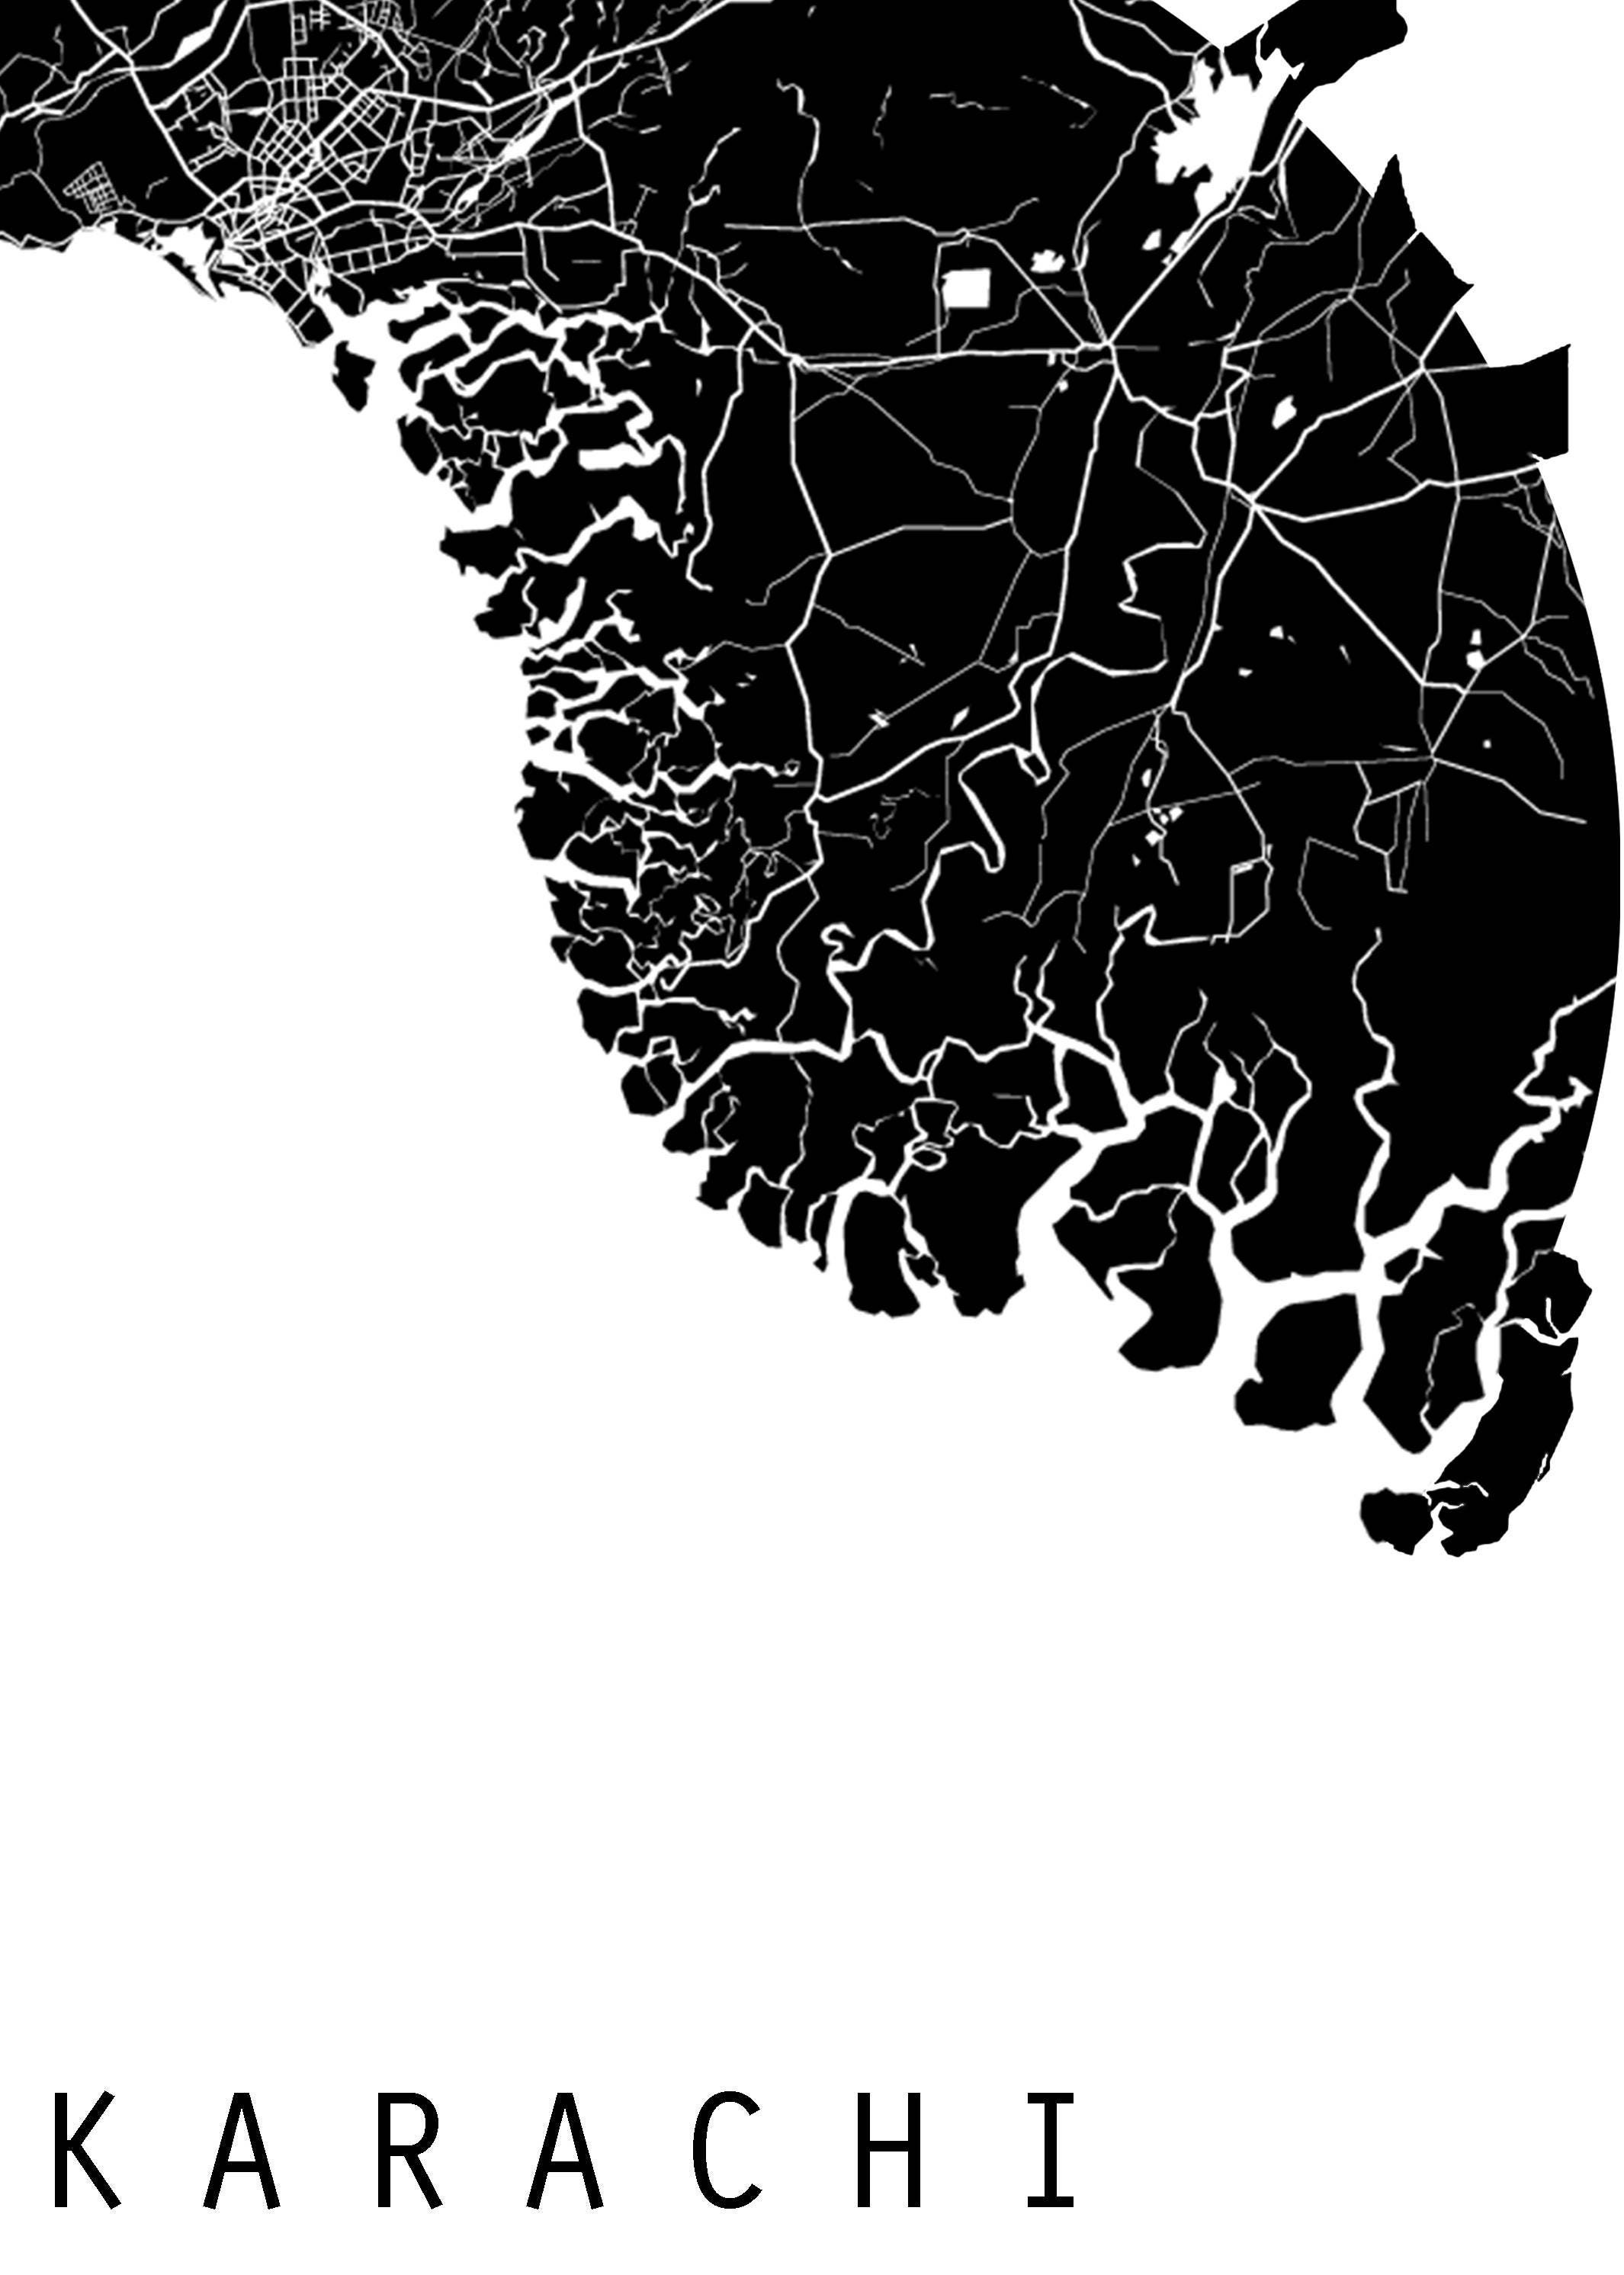 Black Map Of Asia.Karachi Map World Map Asia Map Pakistan Map Black And White Map Minimalistic Map Minimal Map Black Map White Map Minimal Map